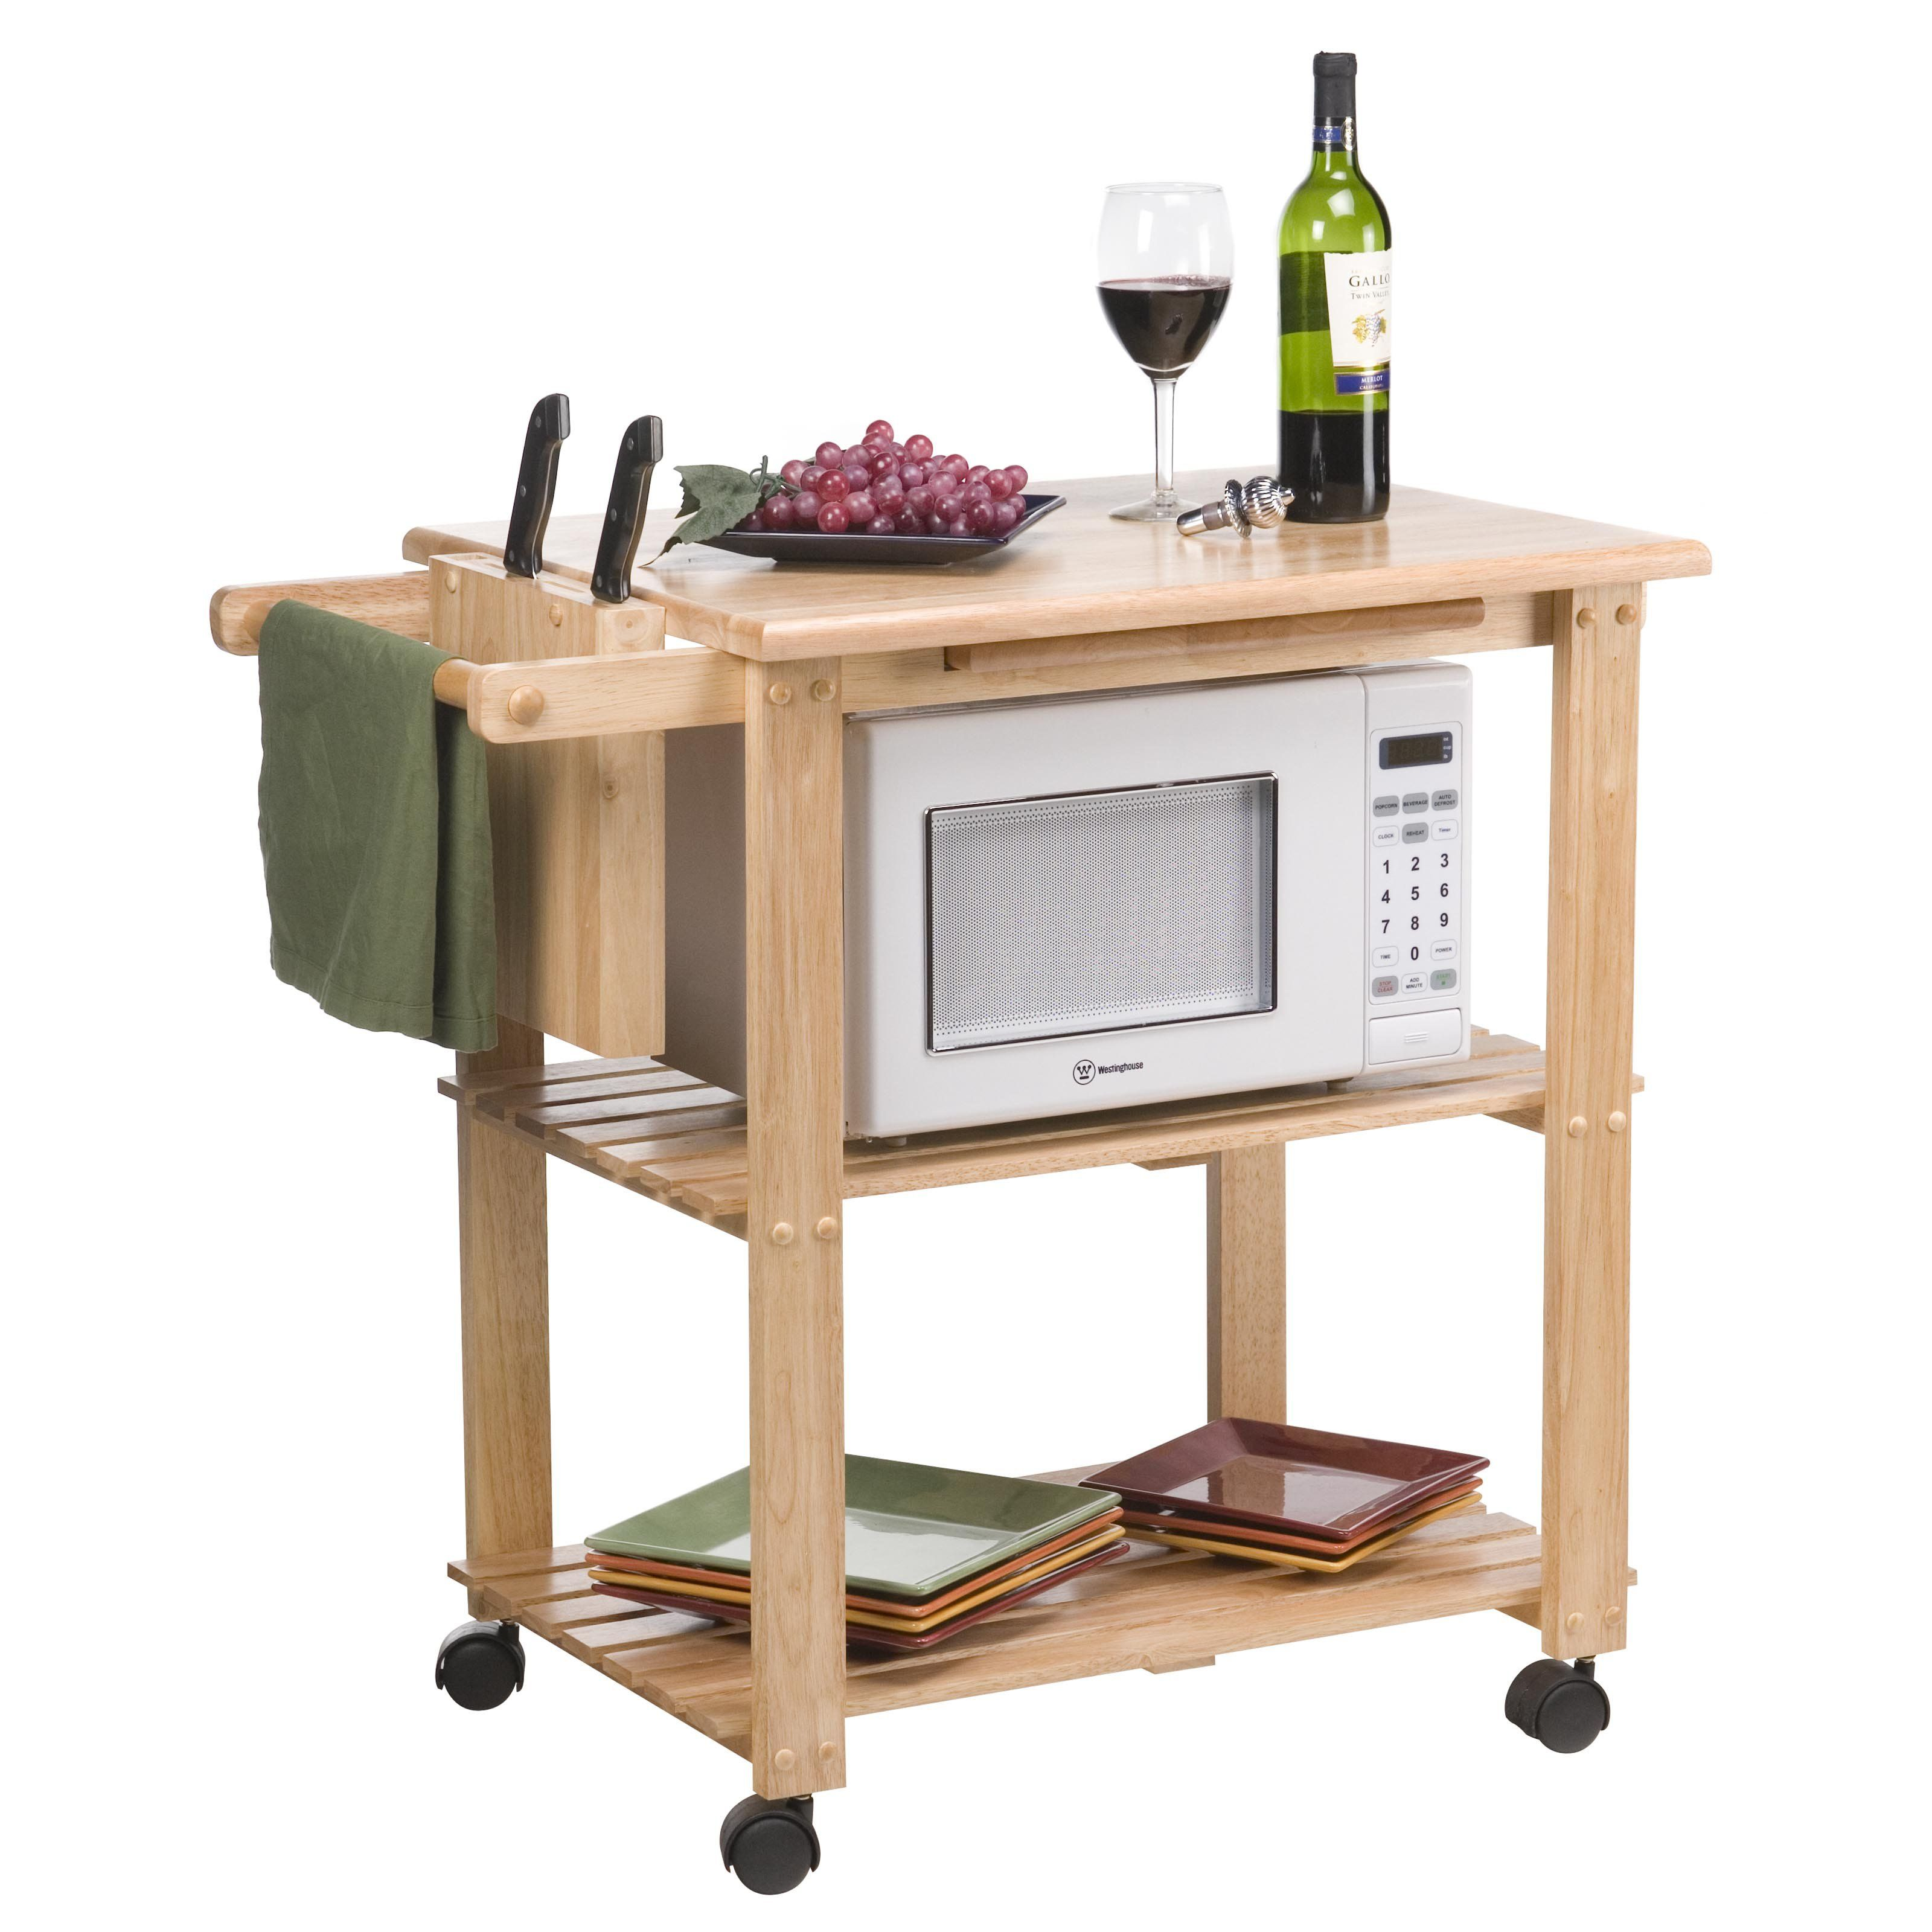 Kitchen Storage Cart Granite For Outdoor Have To It The Stetson Microwave 115 99